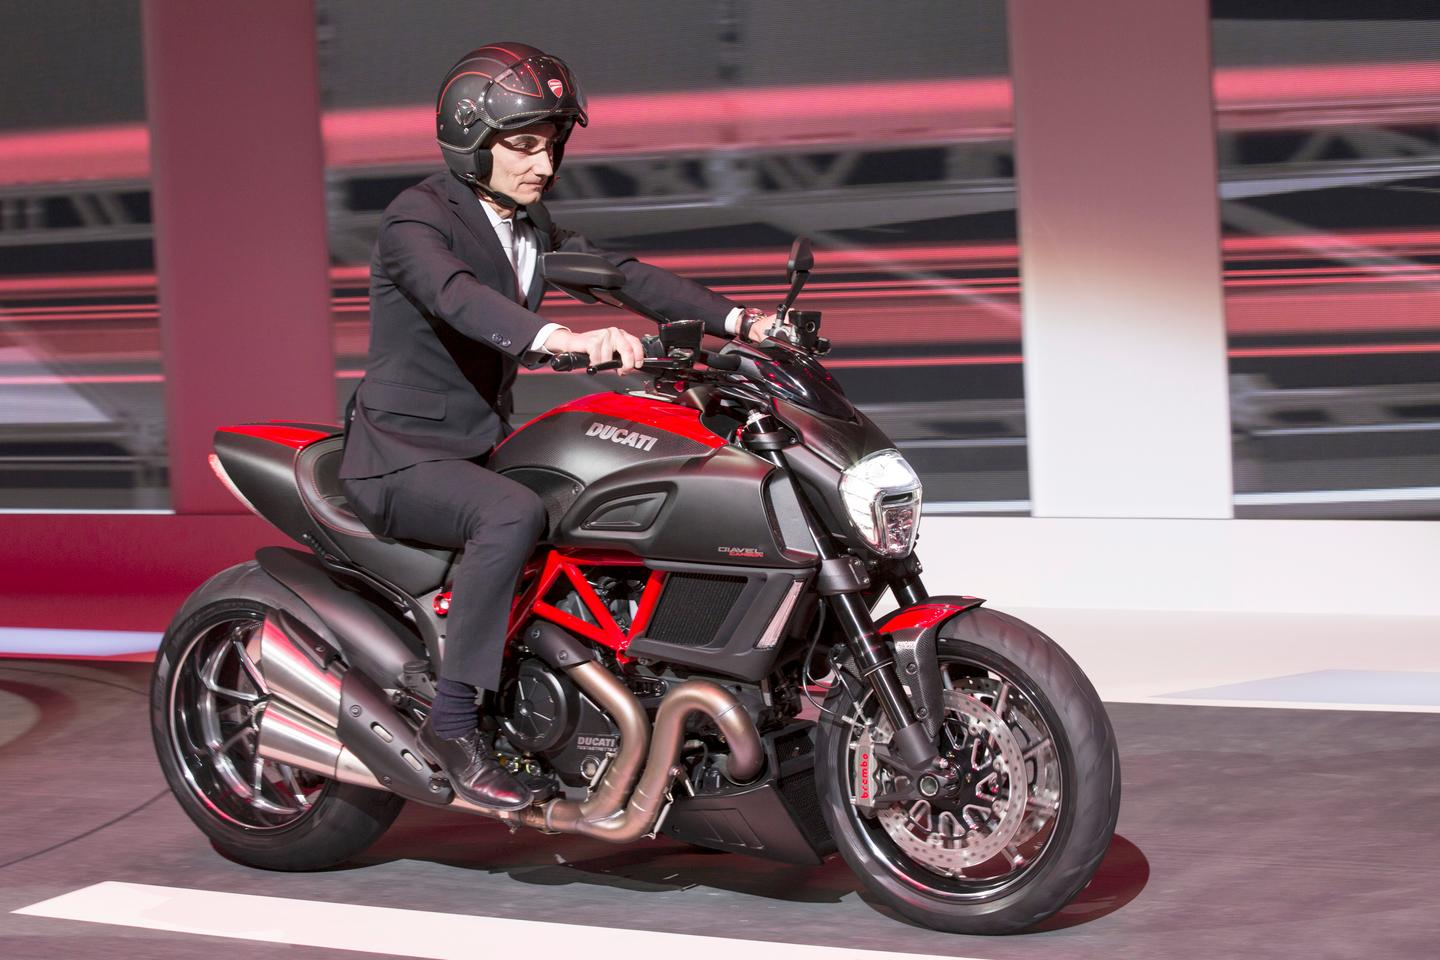 Ducati's CEO Claudio Domenicali rides the Ducati Diavel Carbon onto the stage in Geneva, putting the marque on display to the world's automotive press